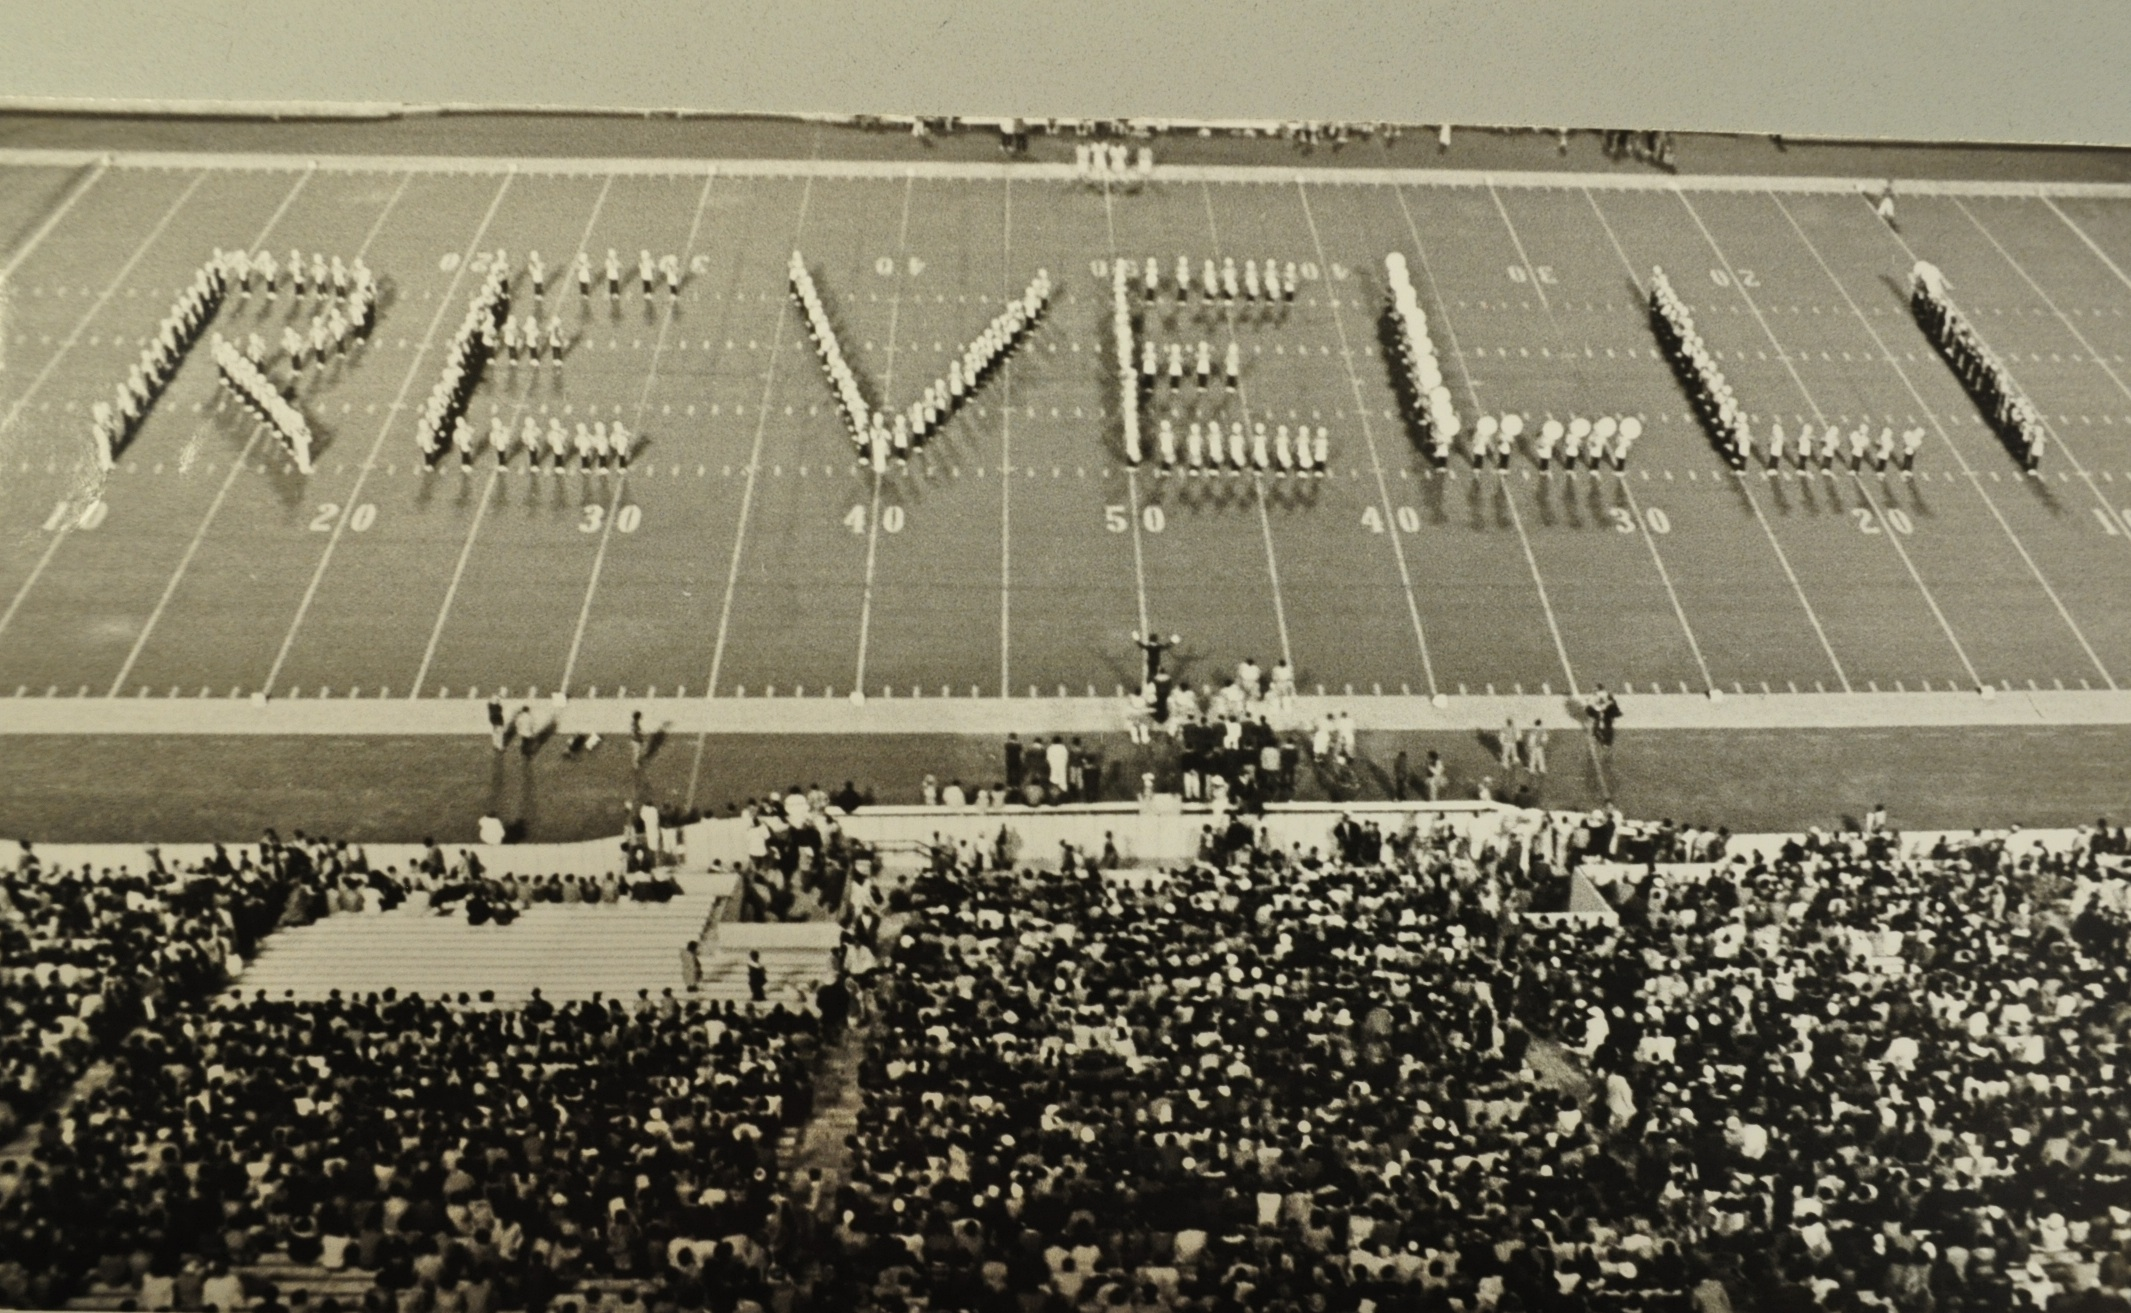 The Michigan Marching Band pays tribute to its longest-serving conductor.